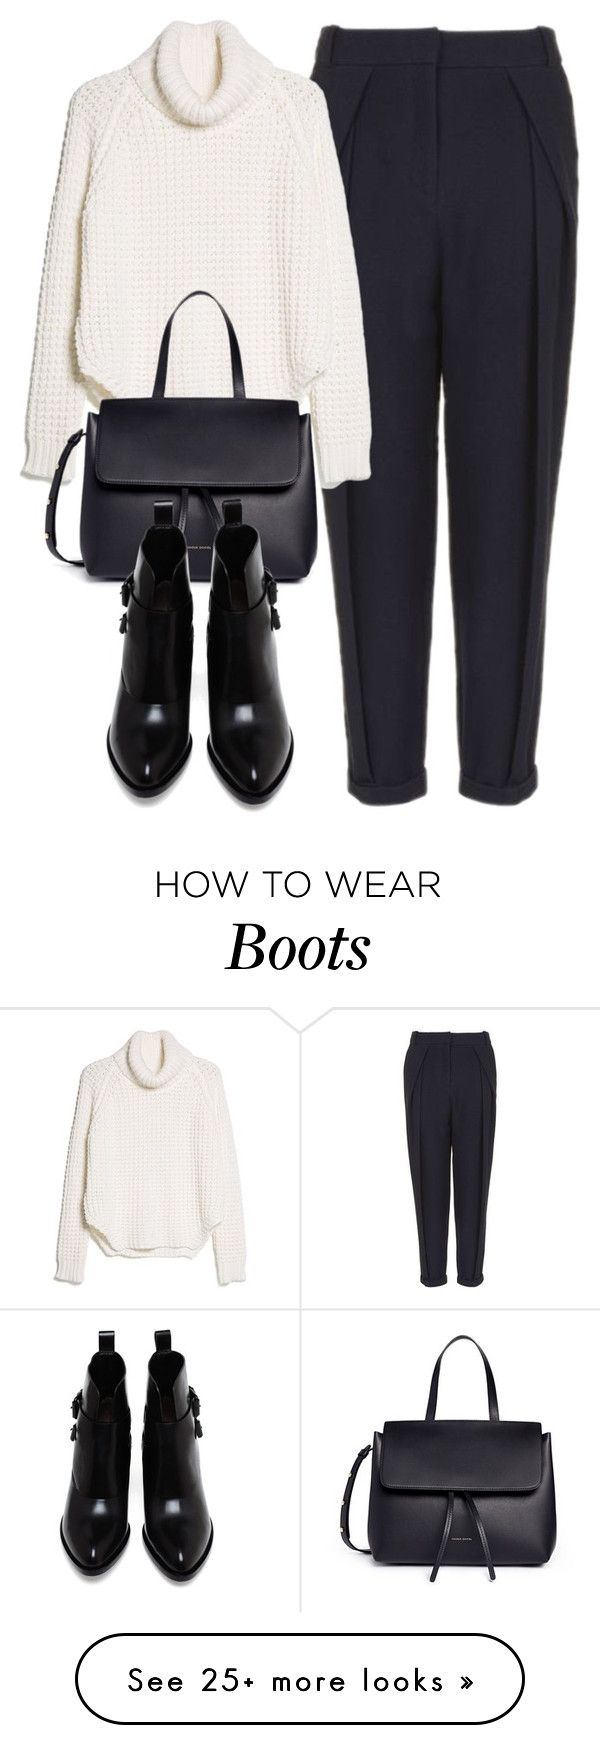 """Untitled #6377"" by laurenmboot on Polyvore featuring Topshop, MANGO, Mansur Gavriel and Alexander Wang"